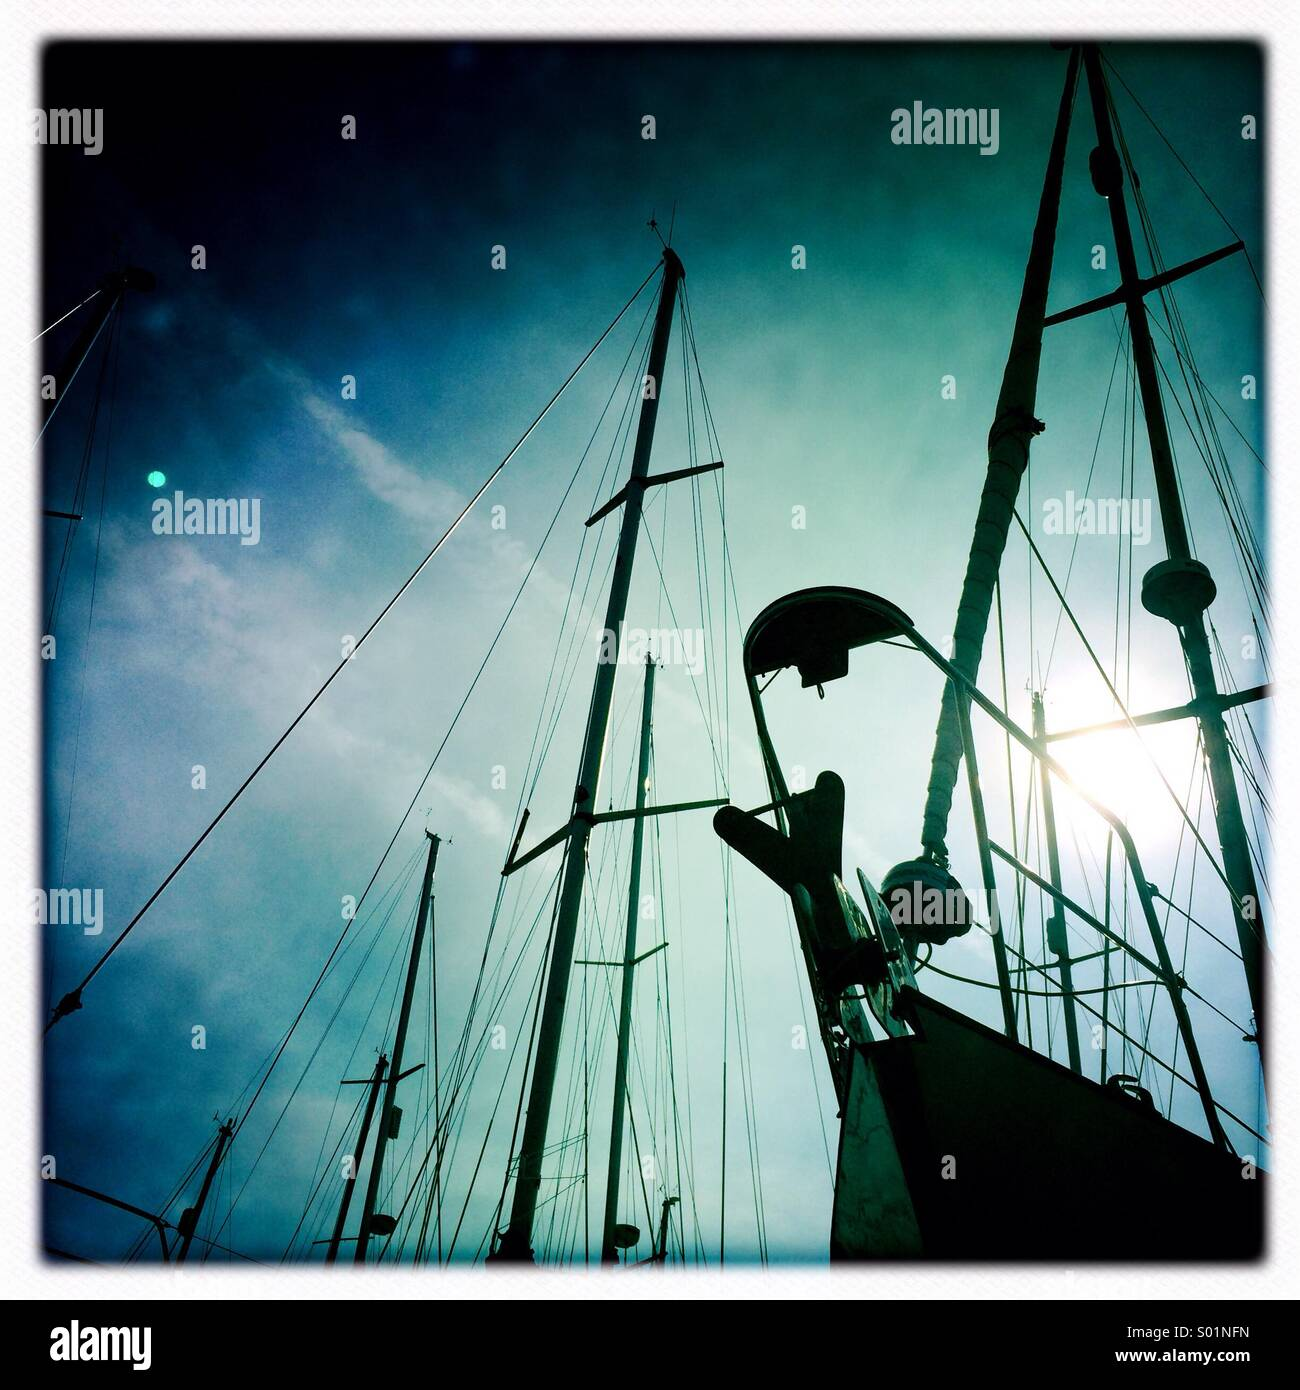 Boat masts silhouetted against a blue sky - Stock Image